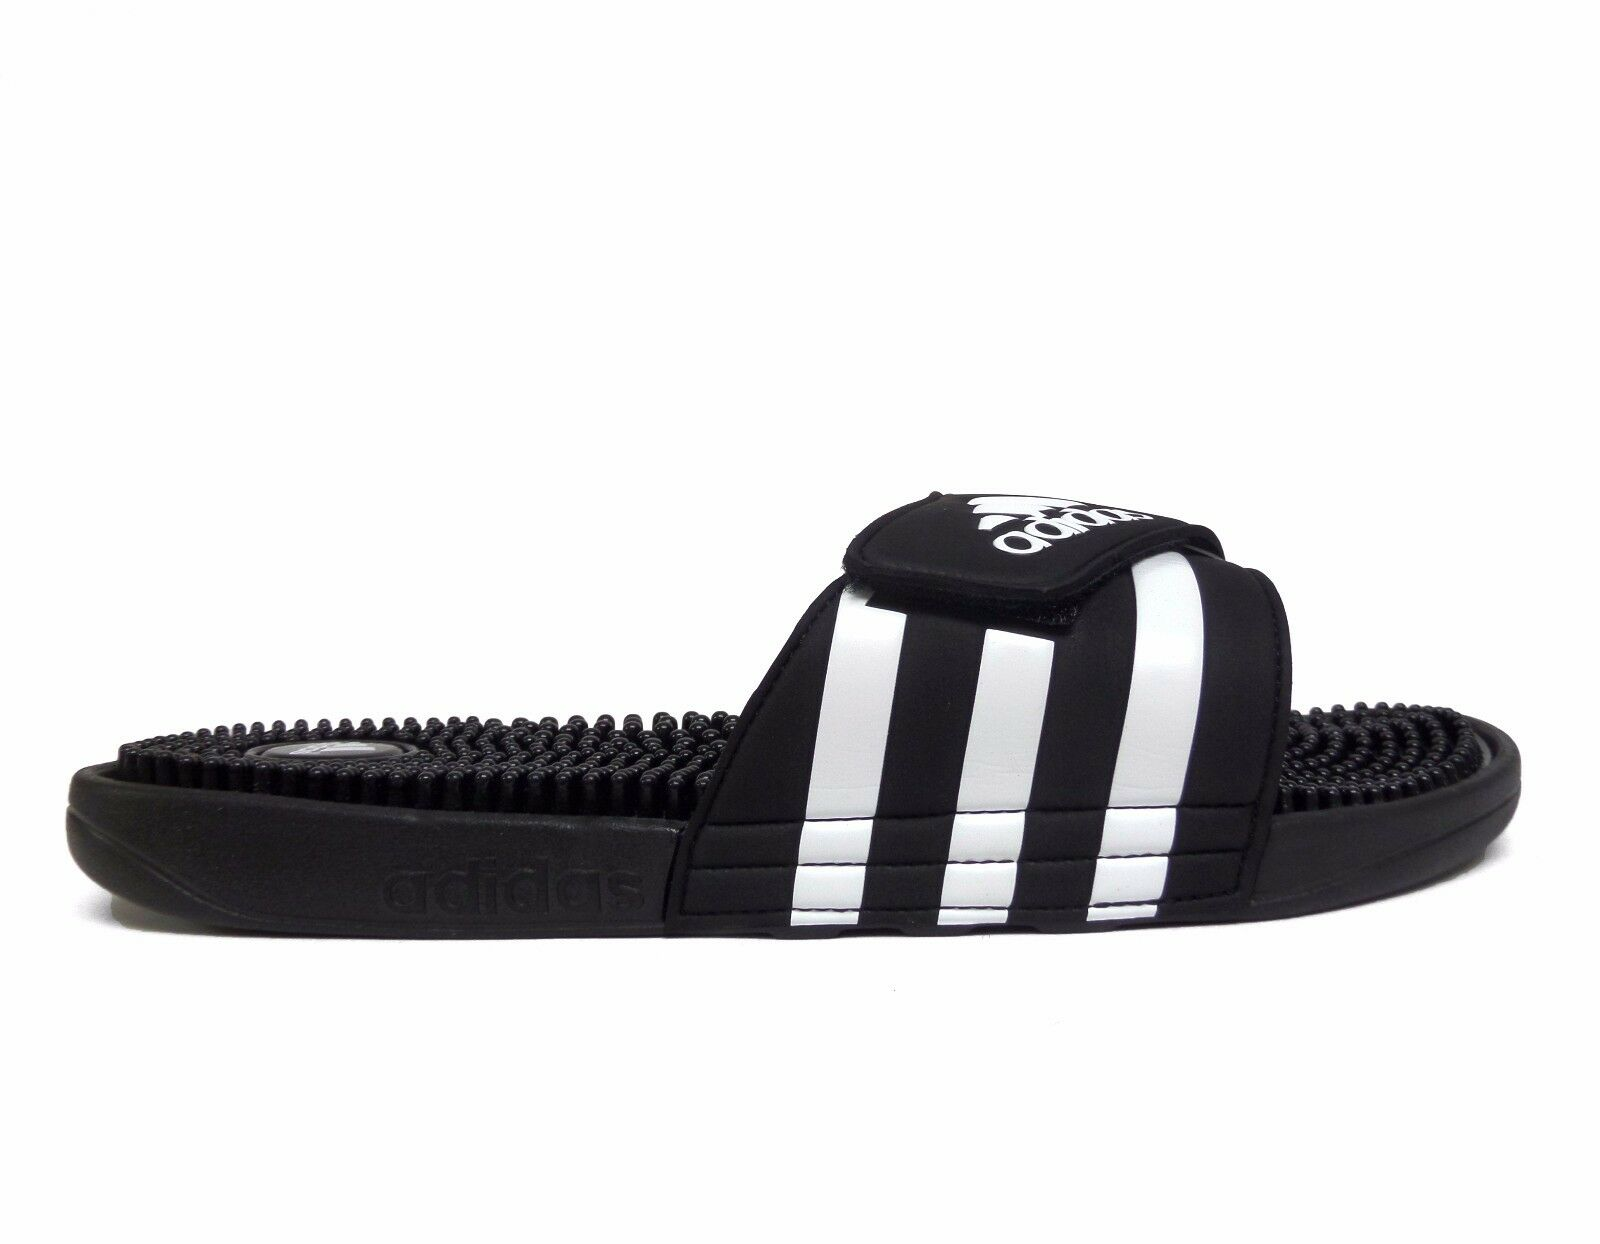 9974412c8df3 Adidas Men s ADISSAGE SLIDES Black Black Black 078260 c 594528 ...